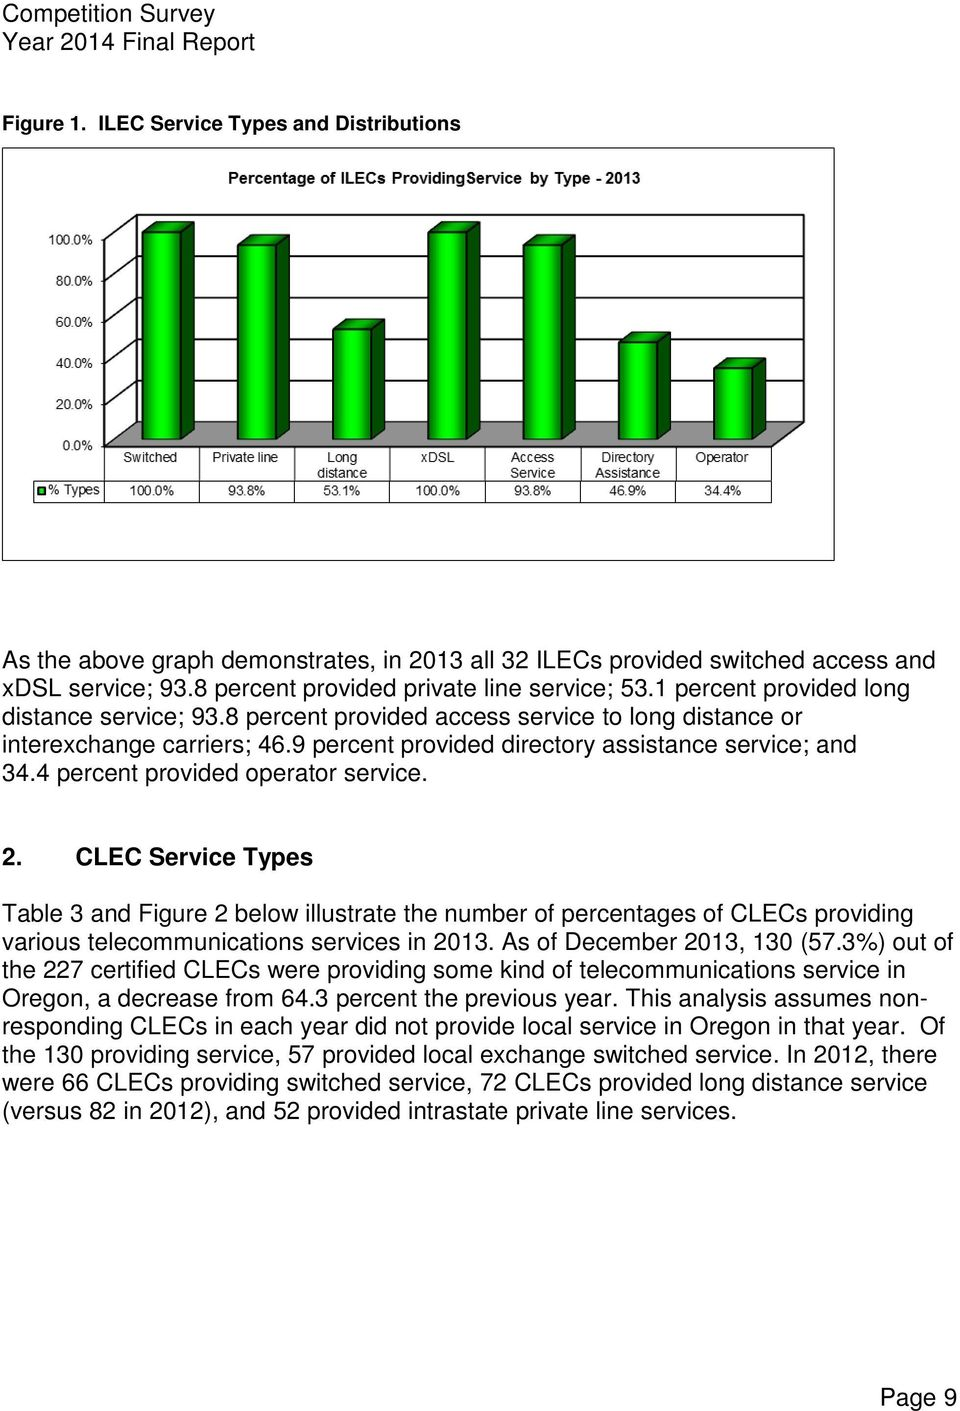 4 percent provided operator service. 2. CLEC Service Types Table 3 and Figure 2 below illustrate the number of percentages of CLECs providing various telecommunications services in 2013.